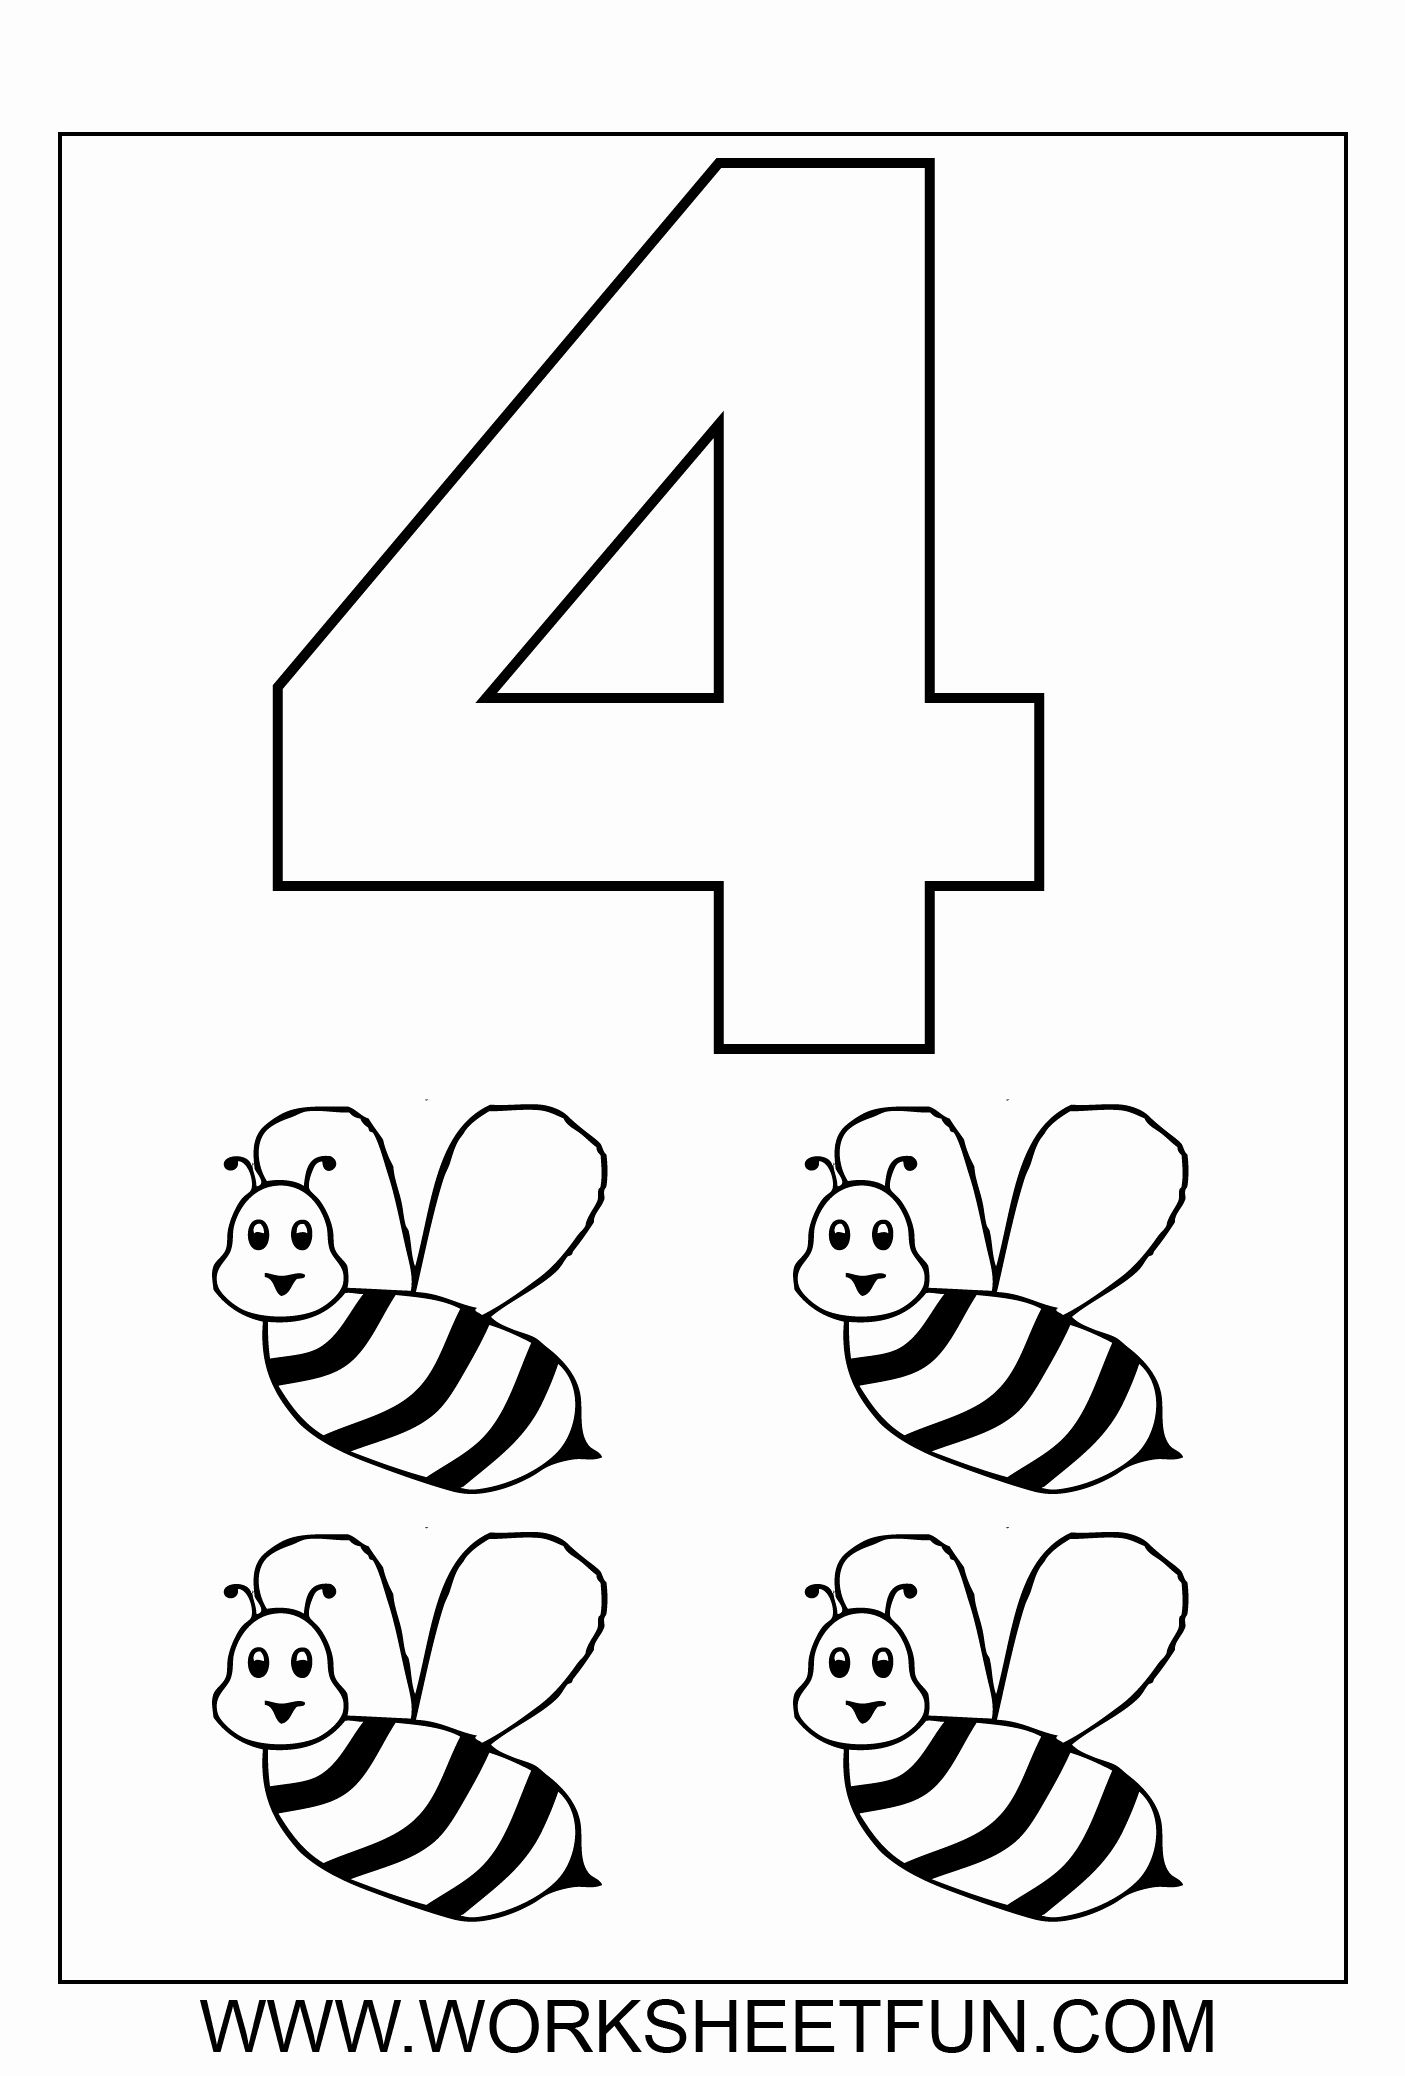 Number Coloring Pages 1 20 Lovely Number Coloring Pages 1 10 Worksheets Free Printable Kindergarten Coloring Pages Free Preschool Worksheets Color Worksheets